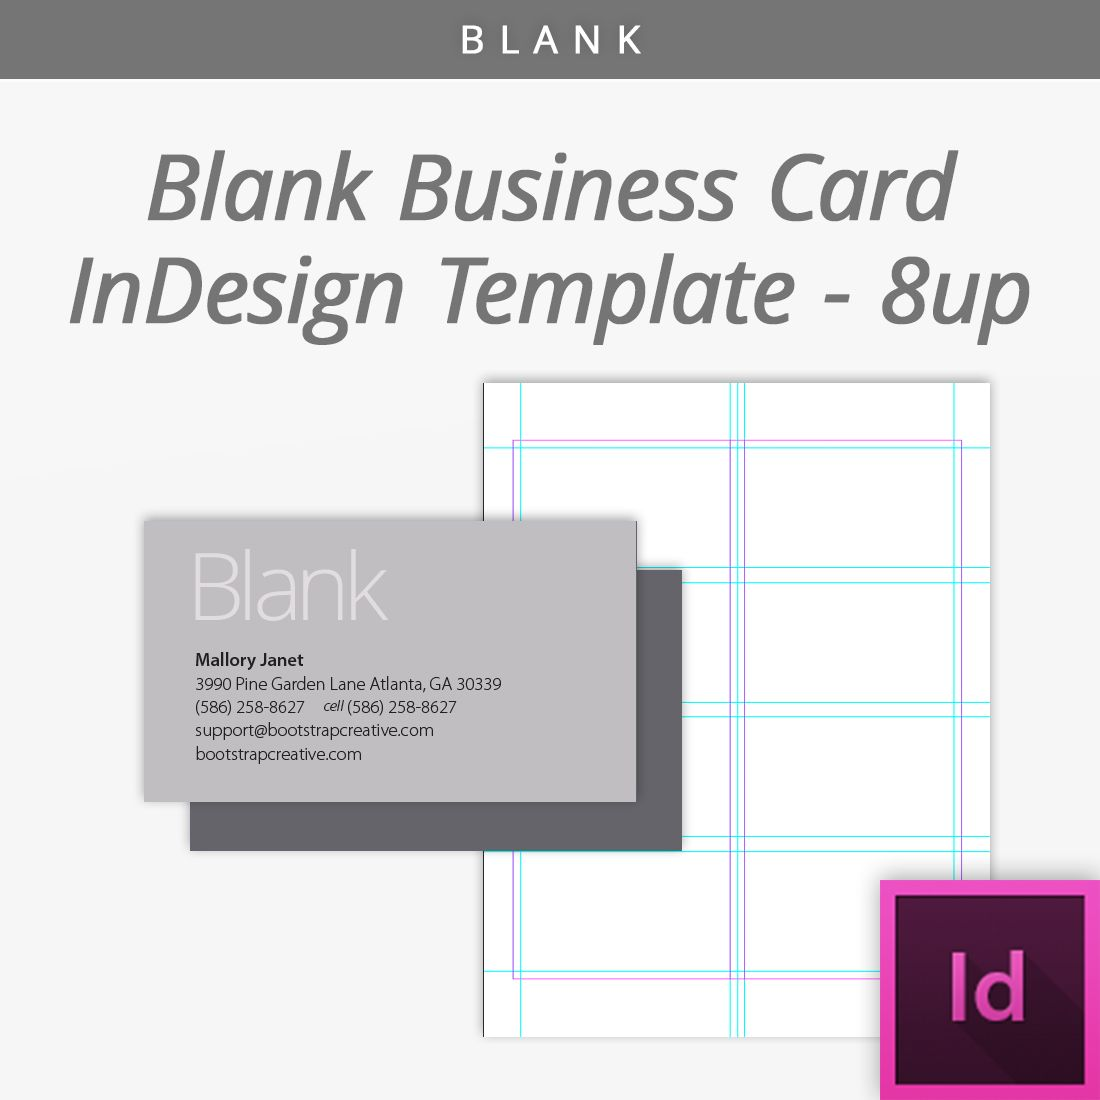 Blank indesign business card template 8 up free download blank indesign business card template 8 up free download designtemplate flashek Choice Image